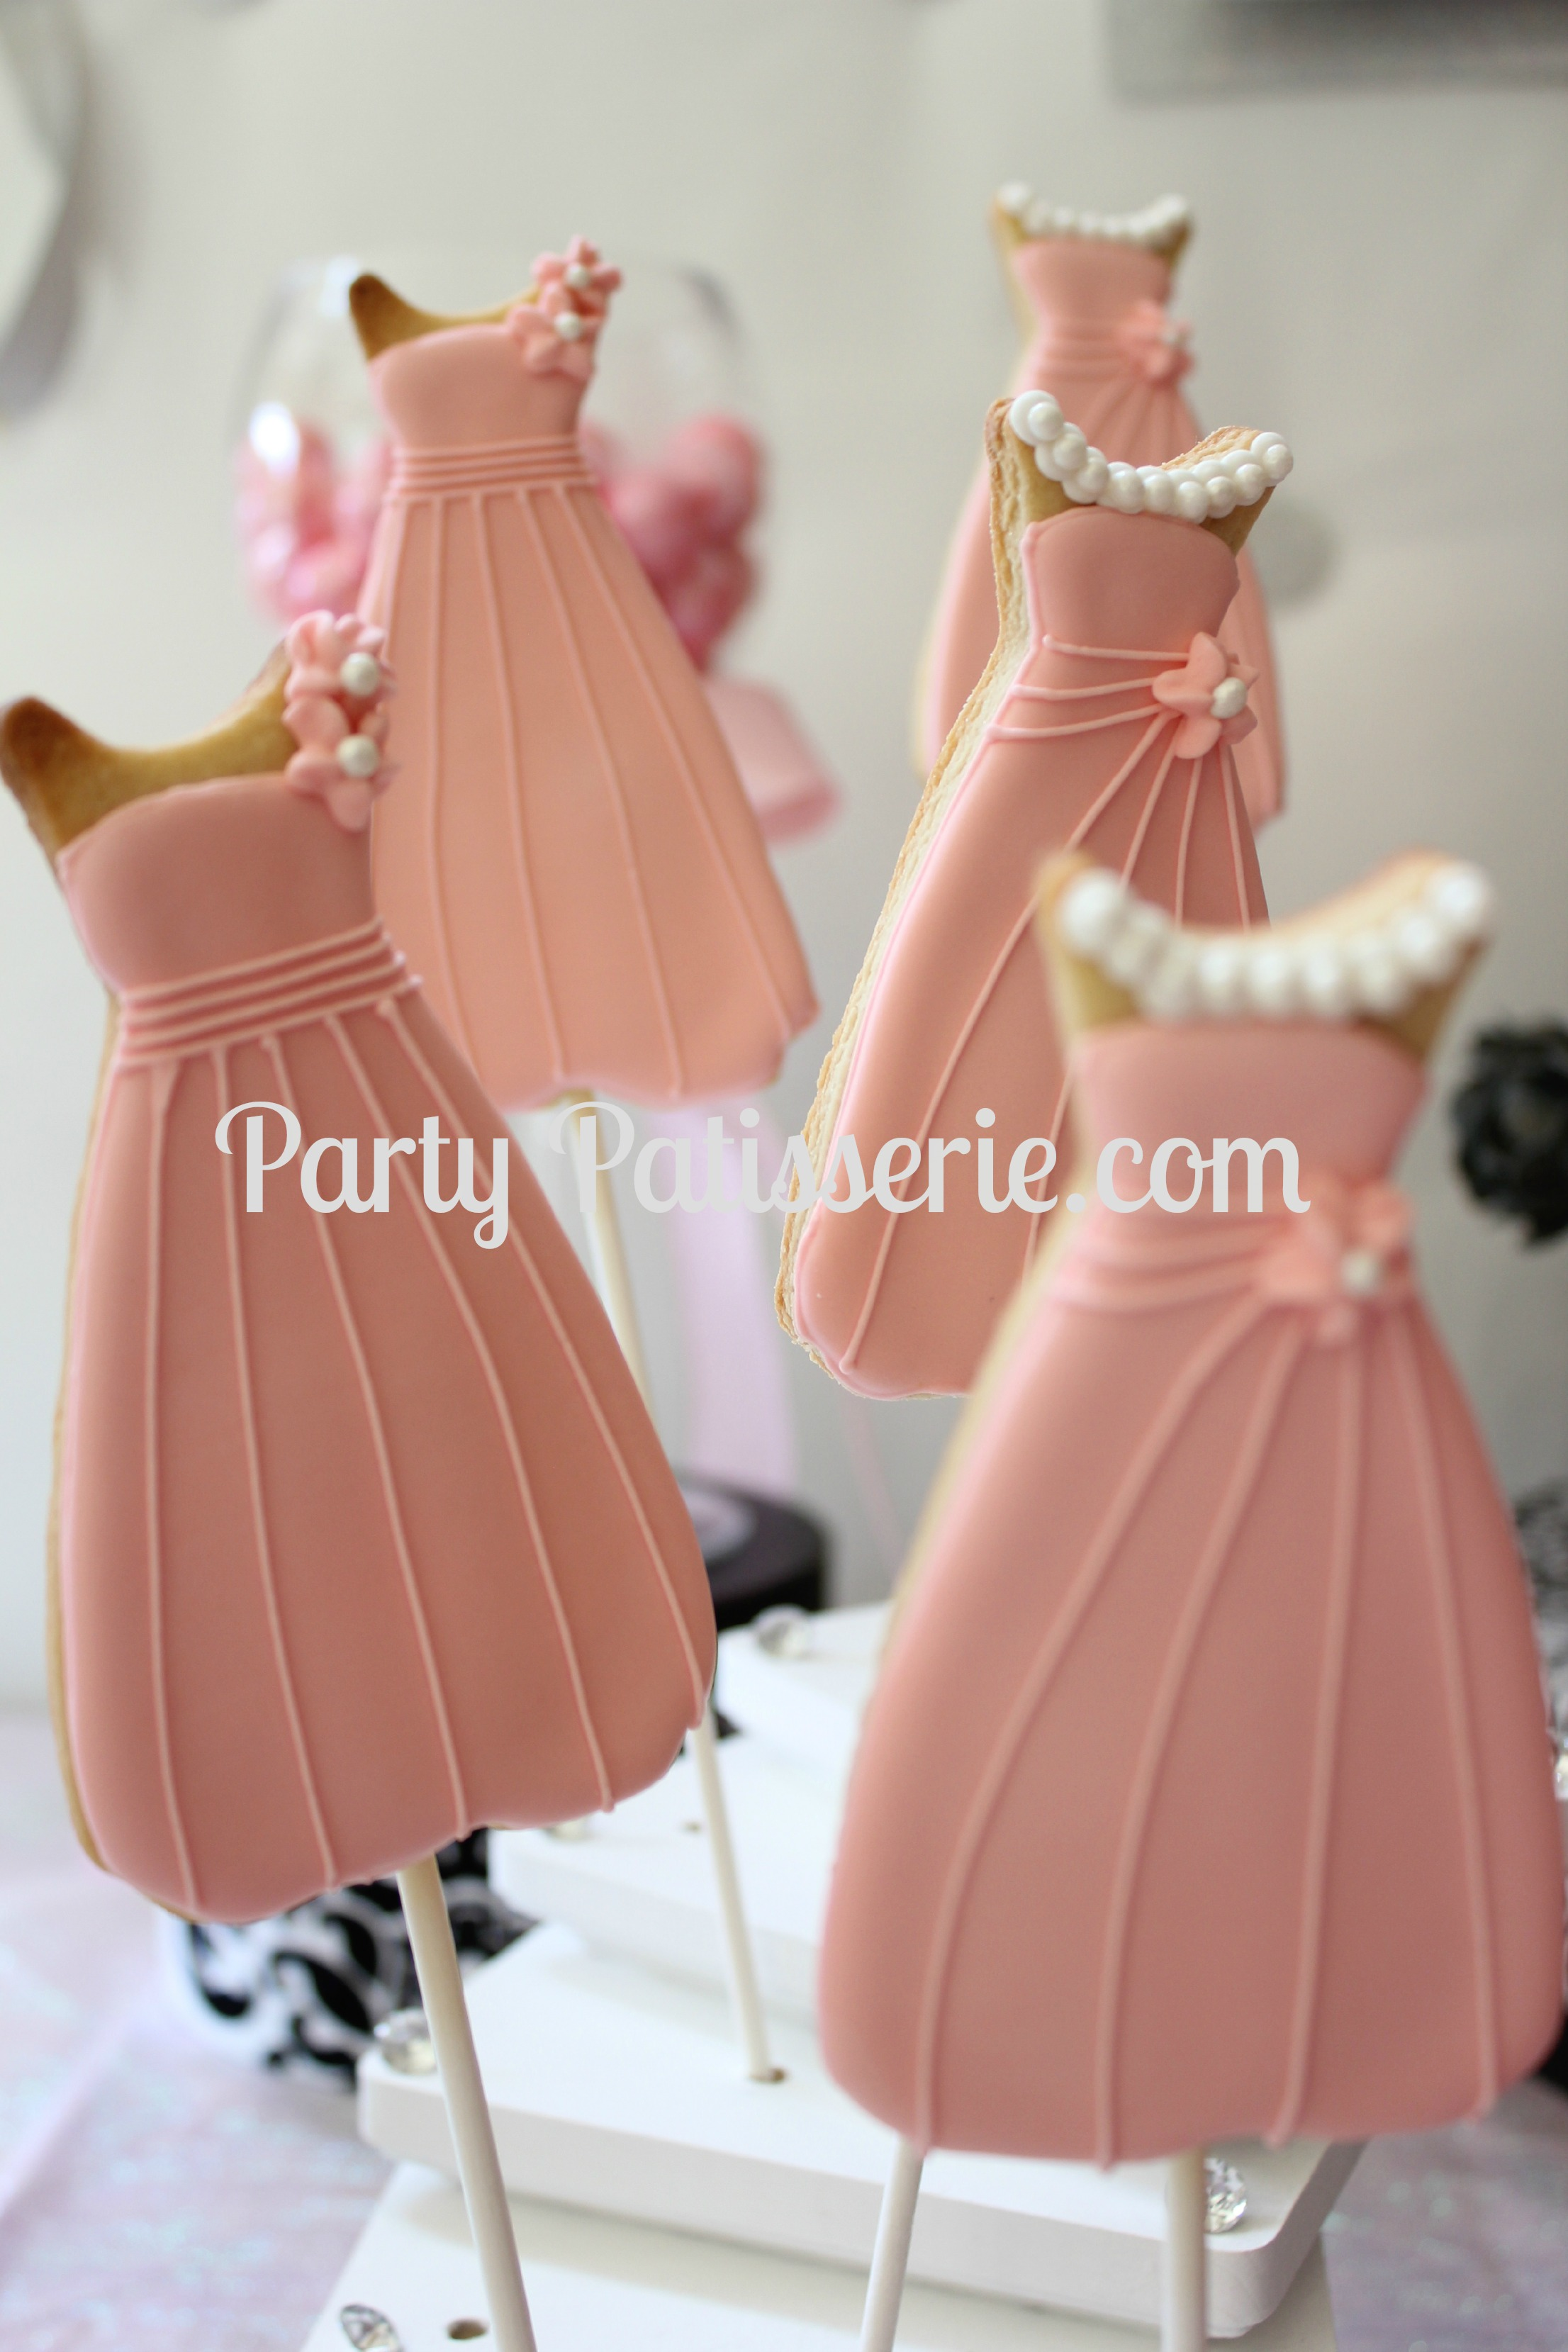 Prom Dresses watermark